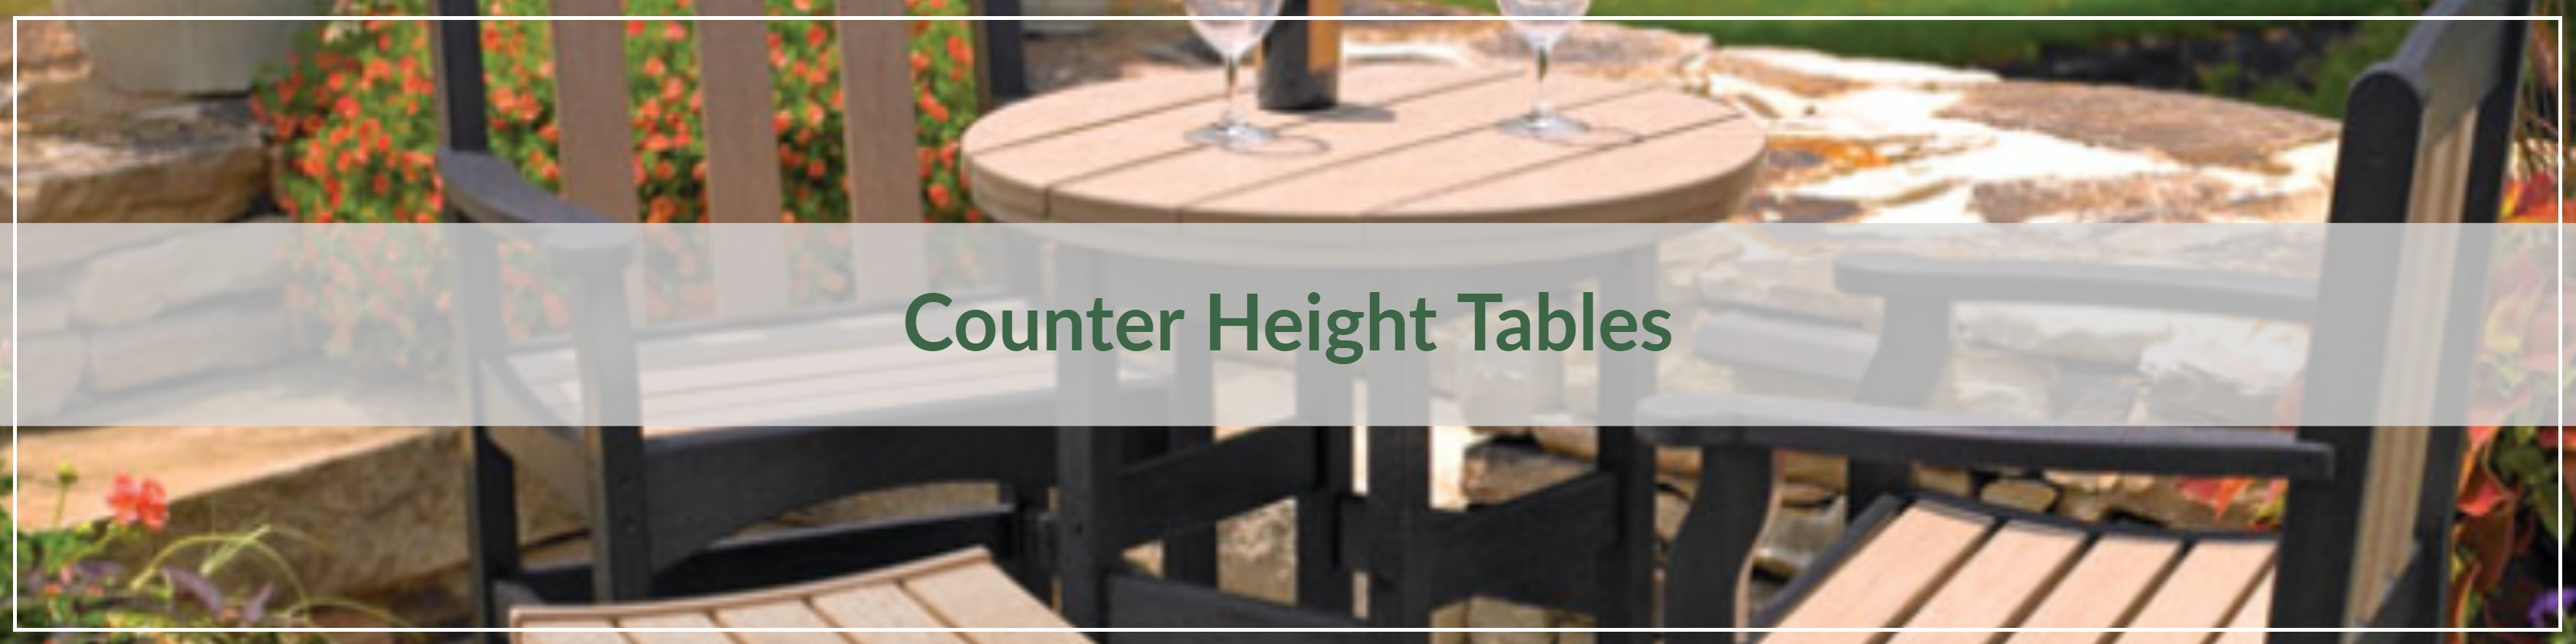 Outdoor Counter Height Tables